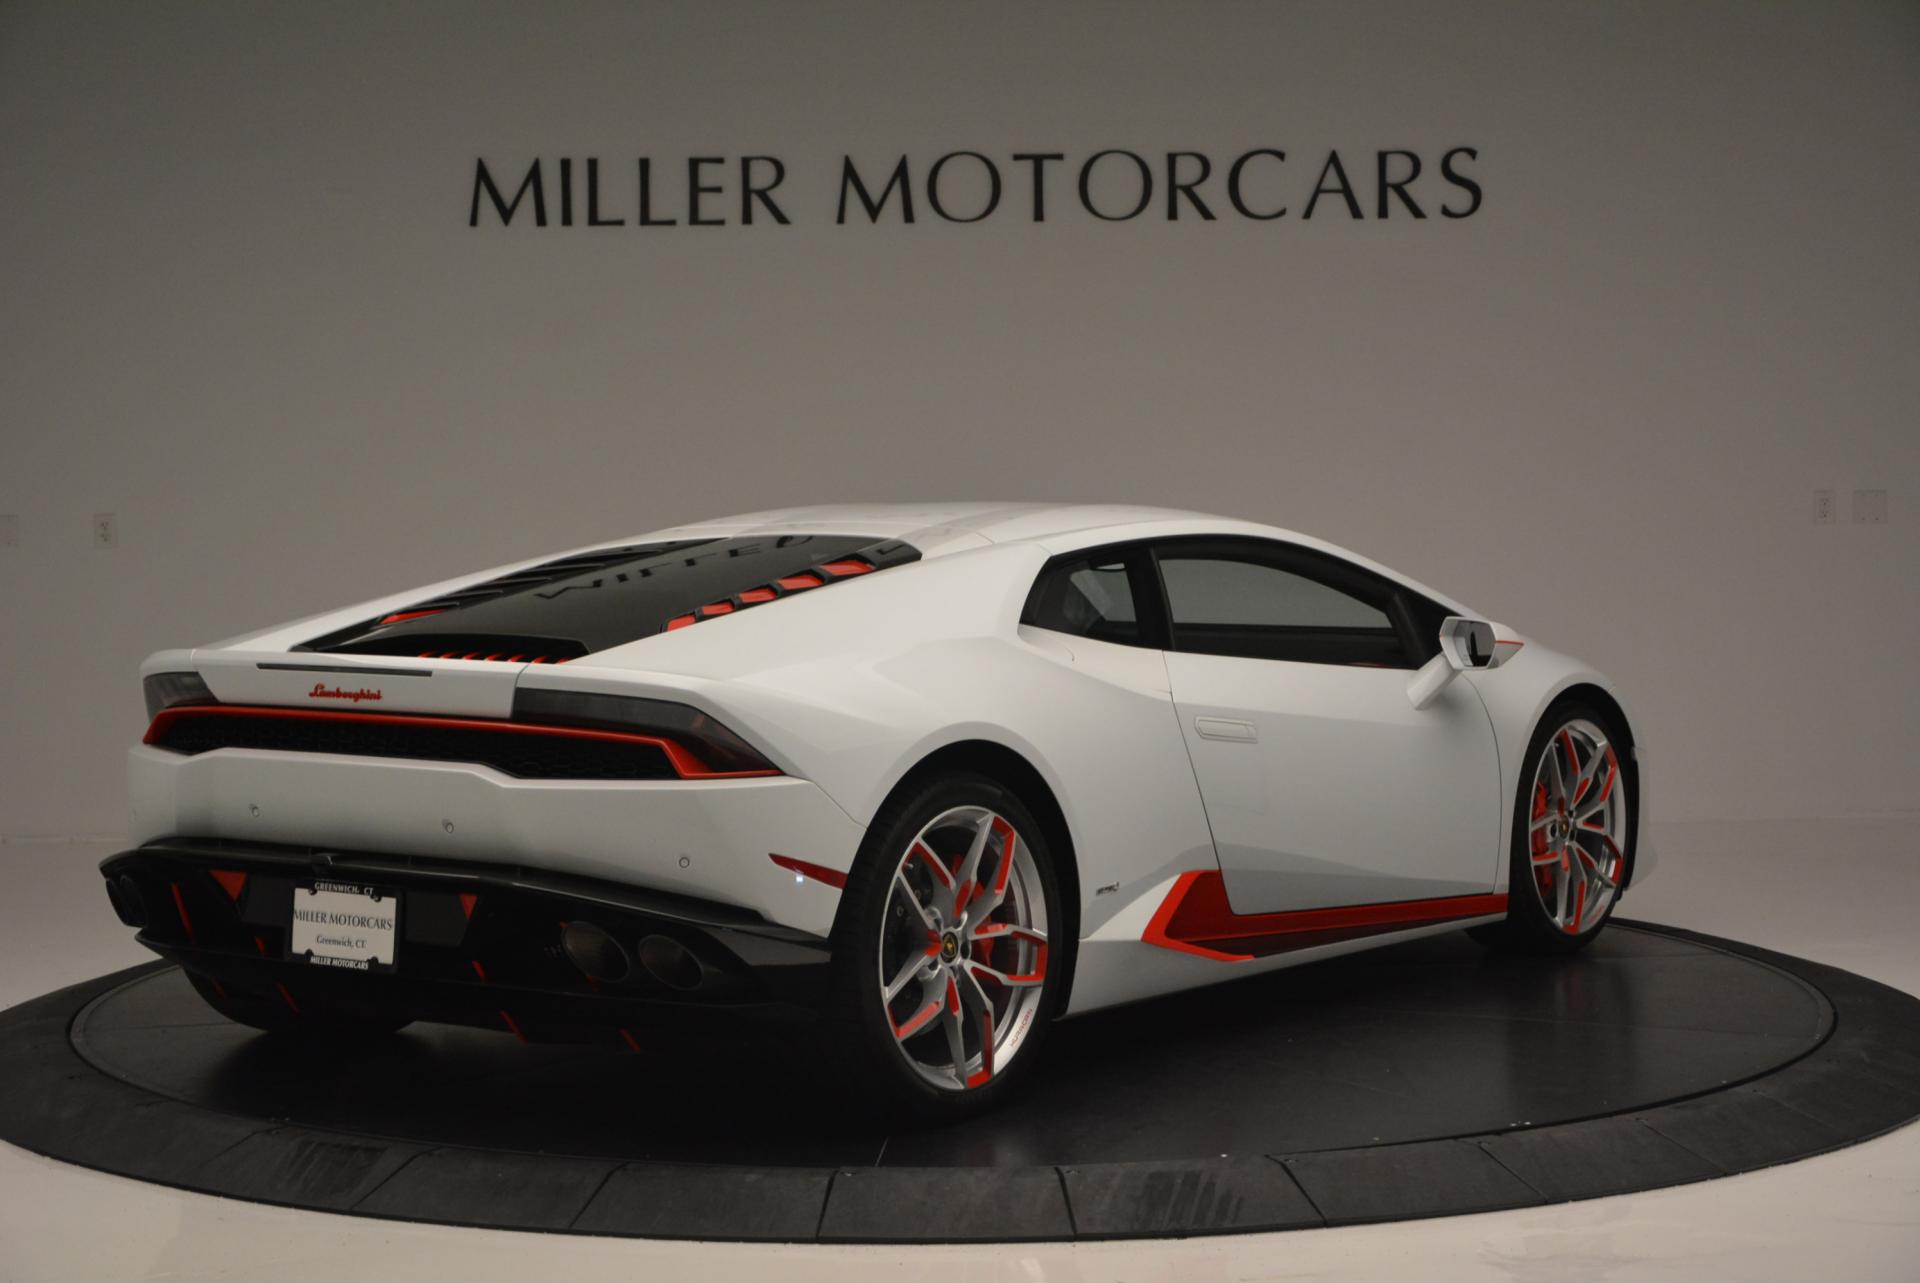 Used 2015 Lamborghini Huracan LP610-4 For Sale In Greenwich, CT 114_p10